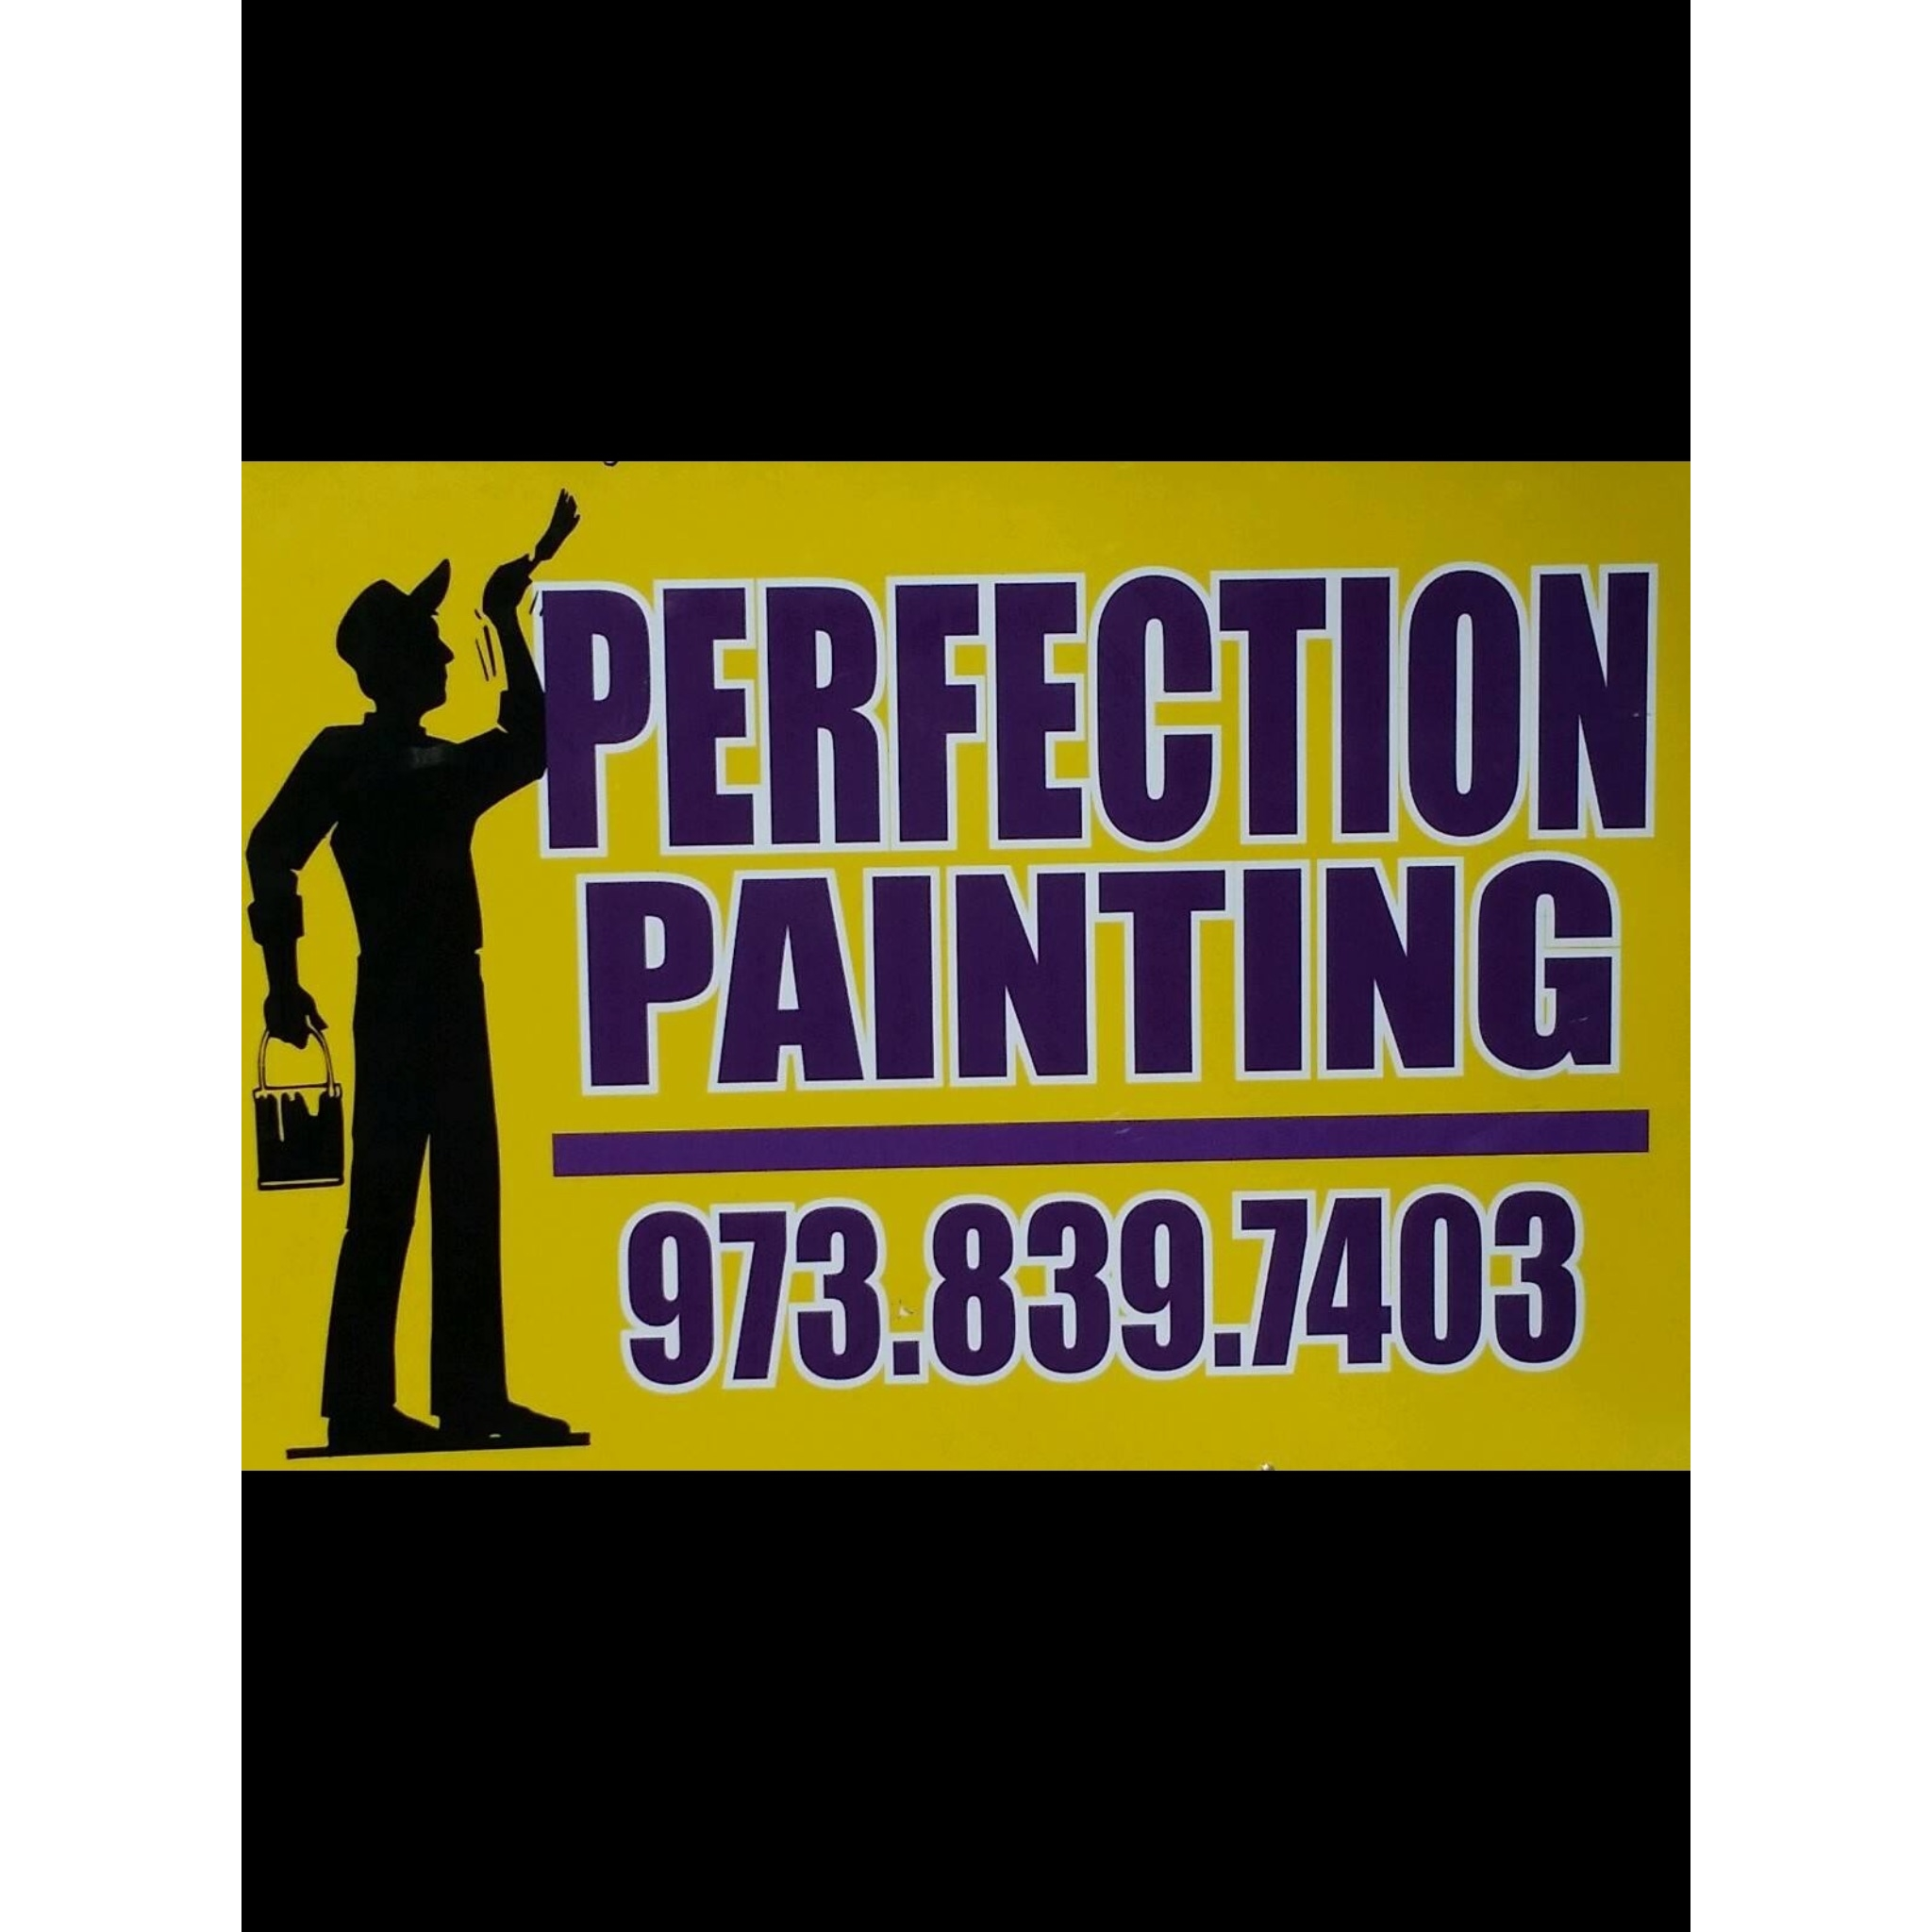 Perfection Painting Amp Papering In Pequannock Nj 07440